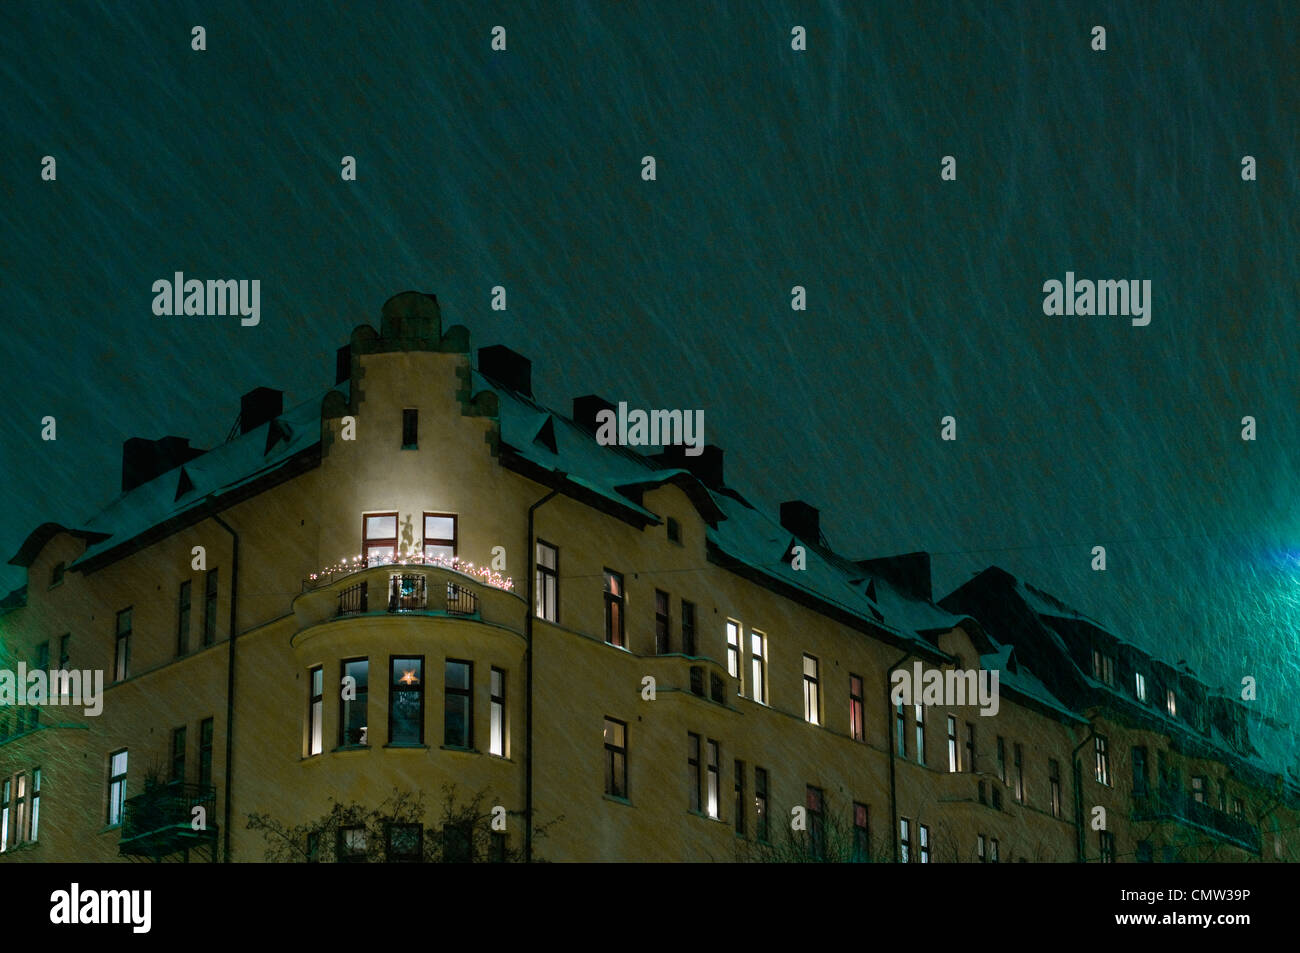 Raindrops on residential building - Stock Image